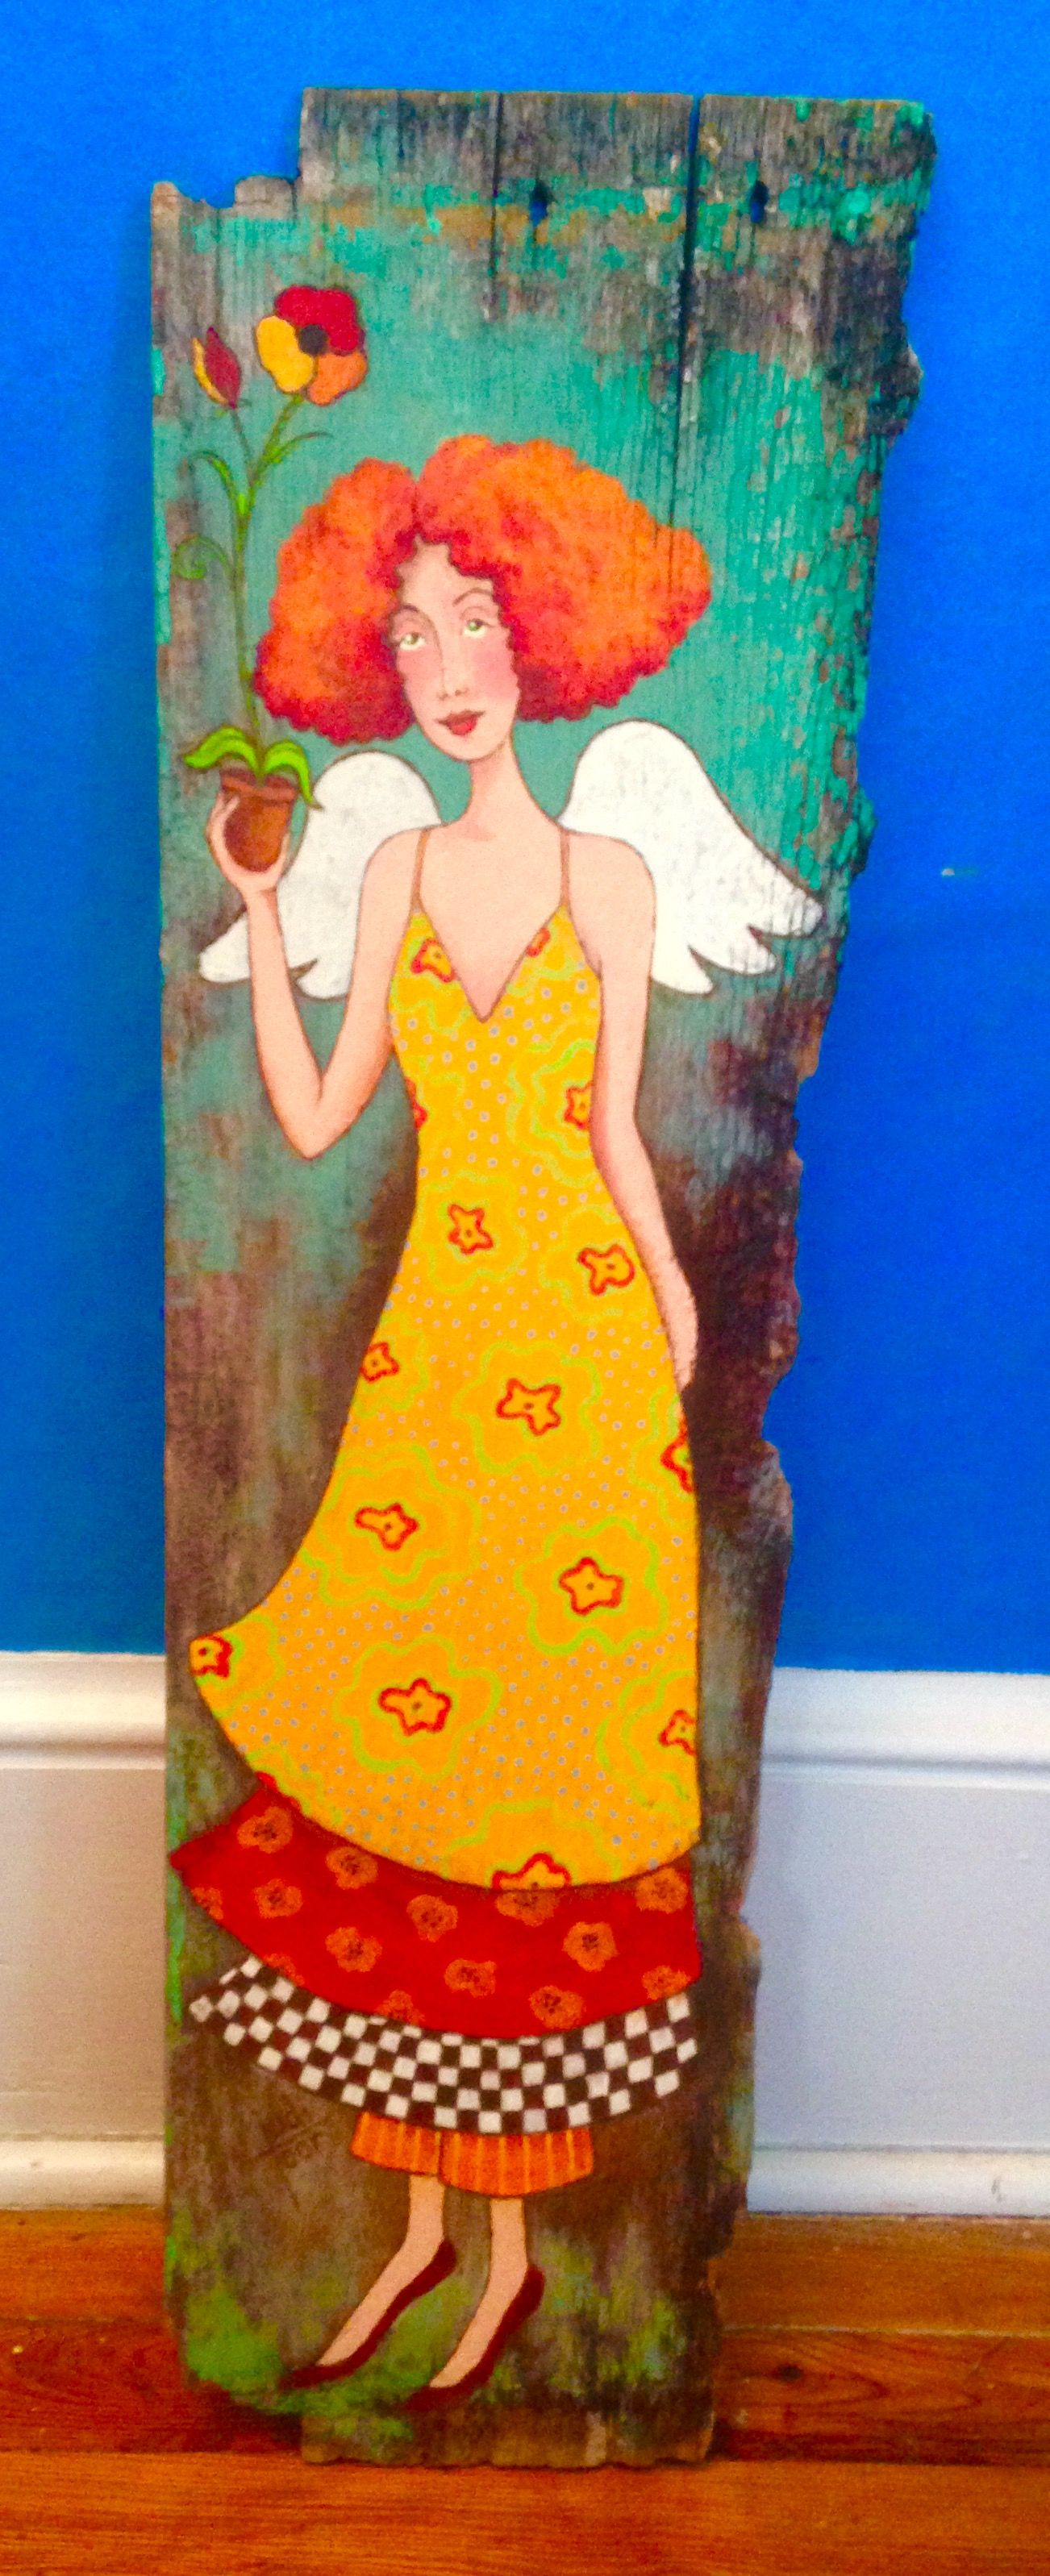 Whimsical angel with a flower from her garden. She is hand painted ...